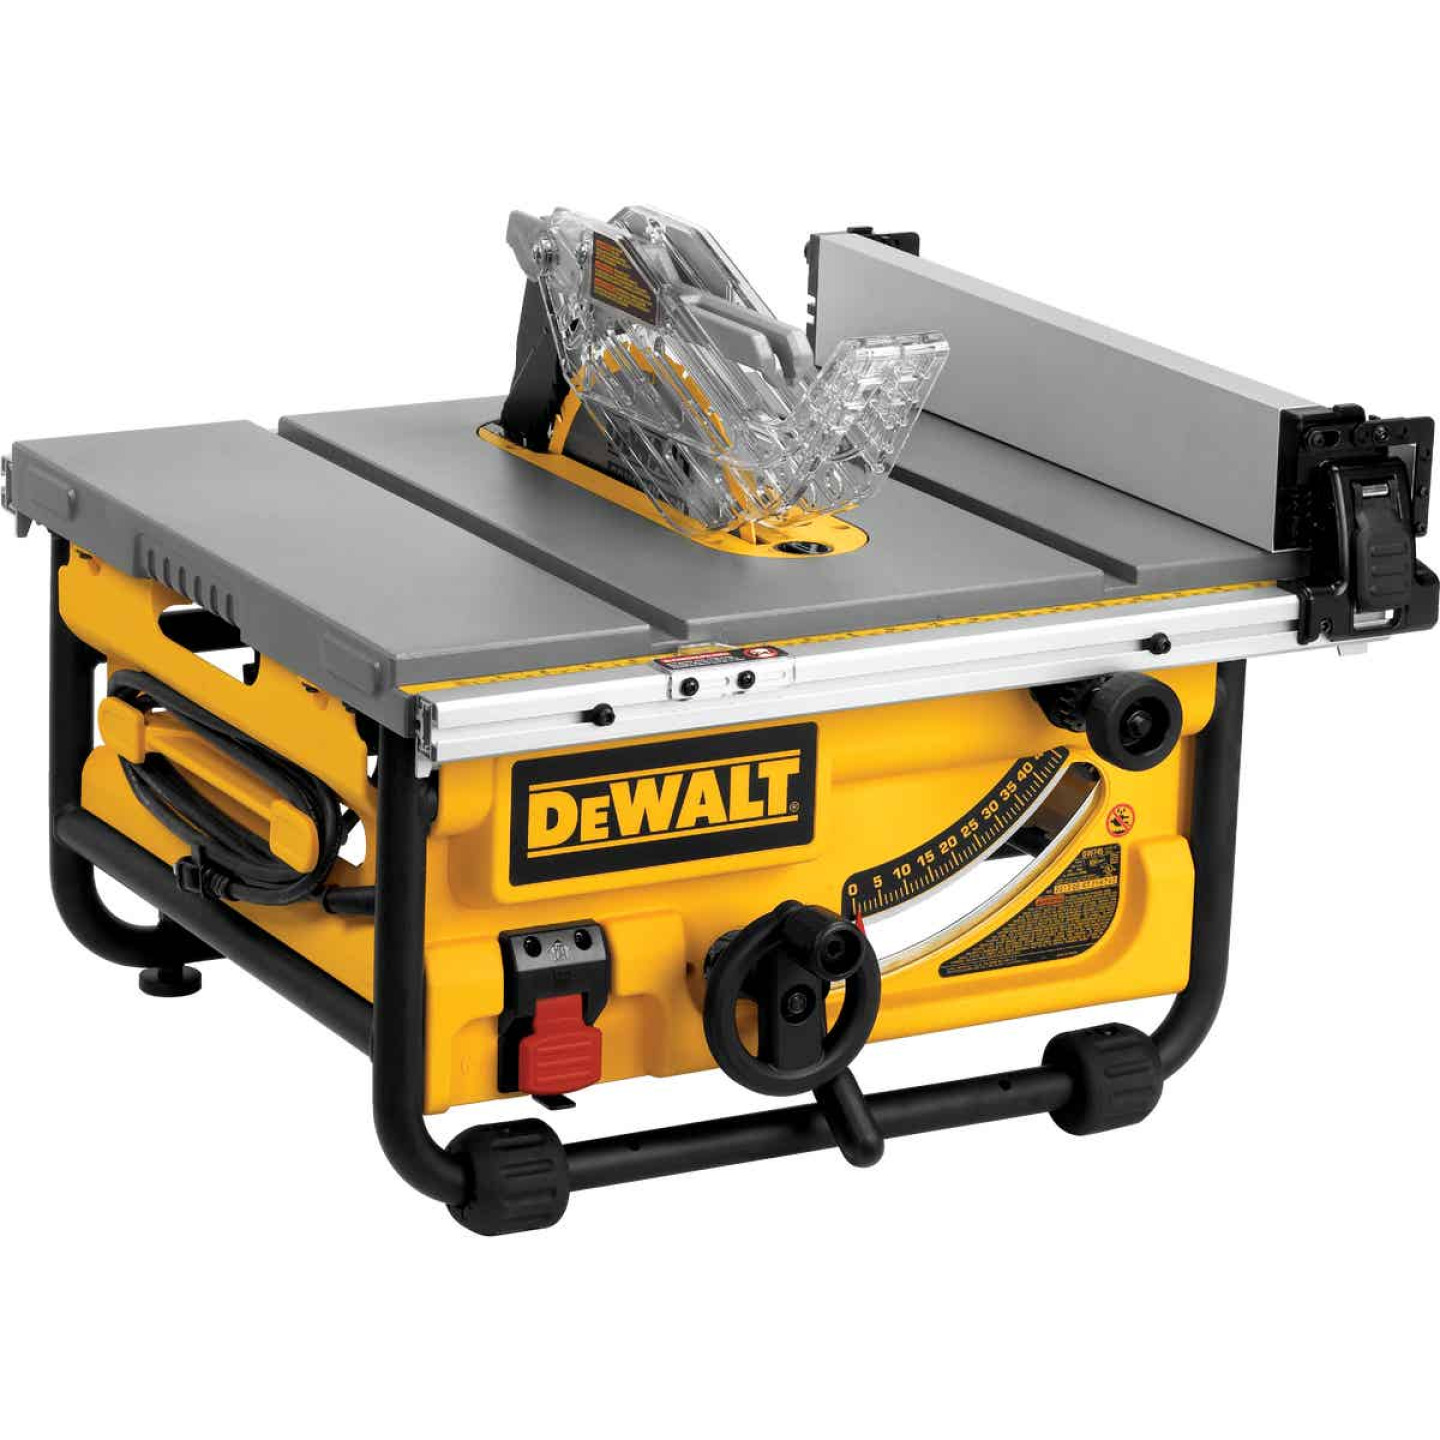 DeWalt 15A 8-1/4 In. Compact Job Site Table Saw w/Site-Pro Modular Guarding System Image 1